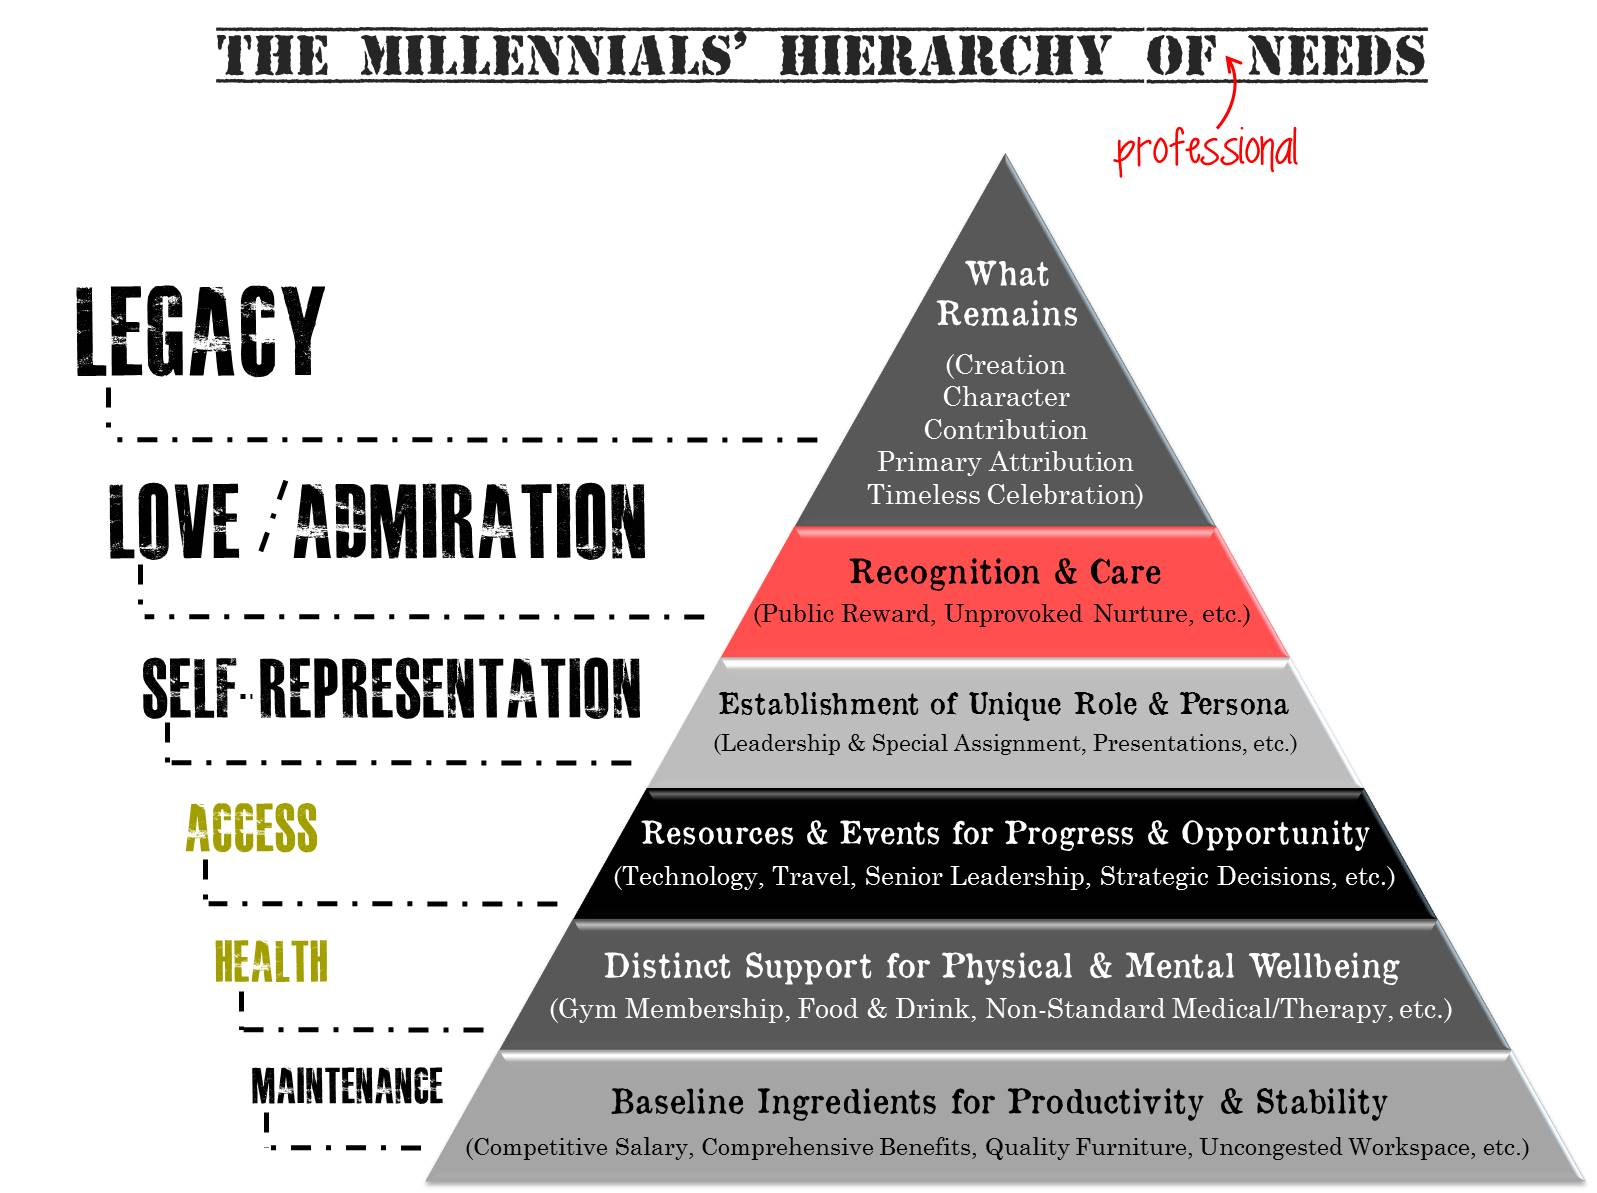 millennials' hierarchy of professional needs by benjamin mann